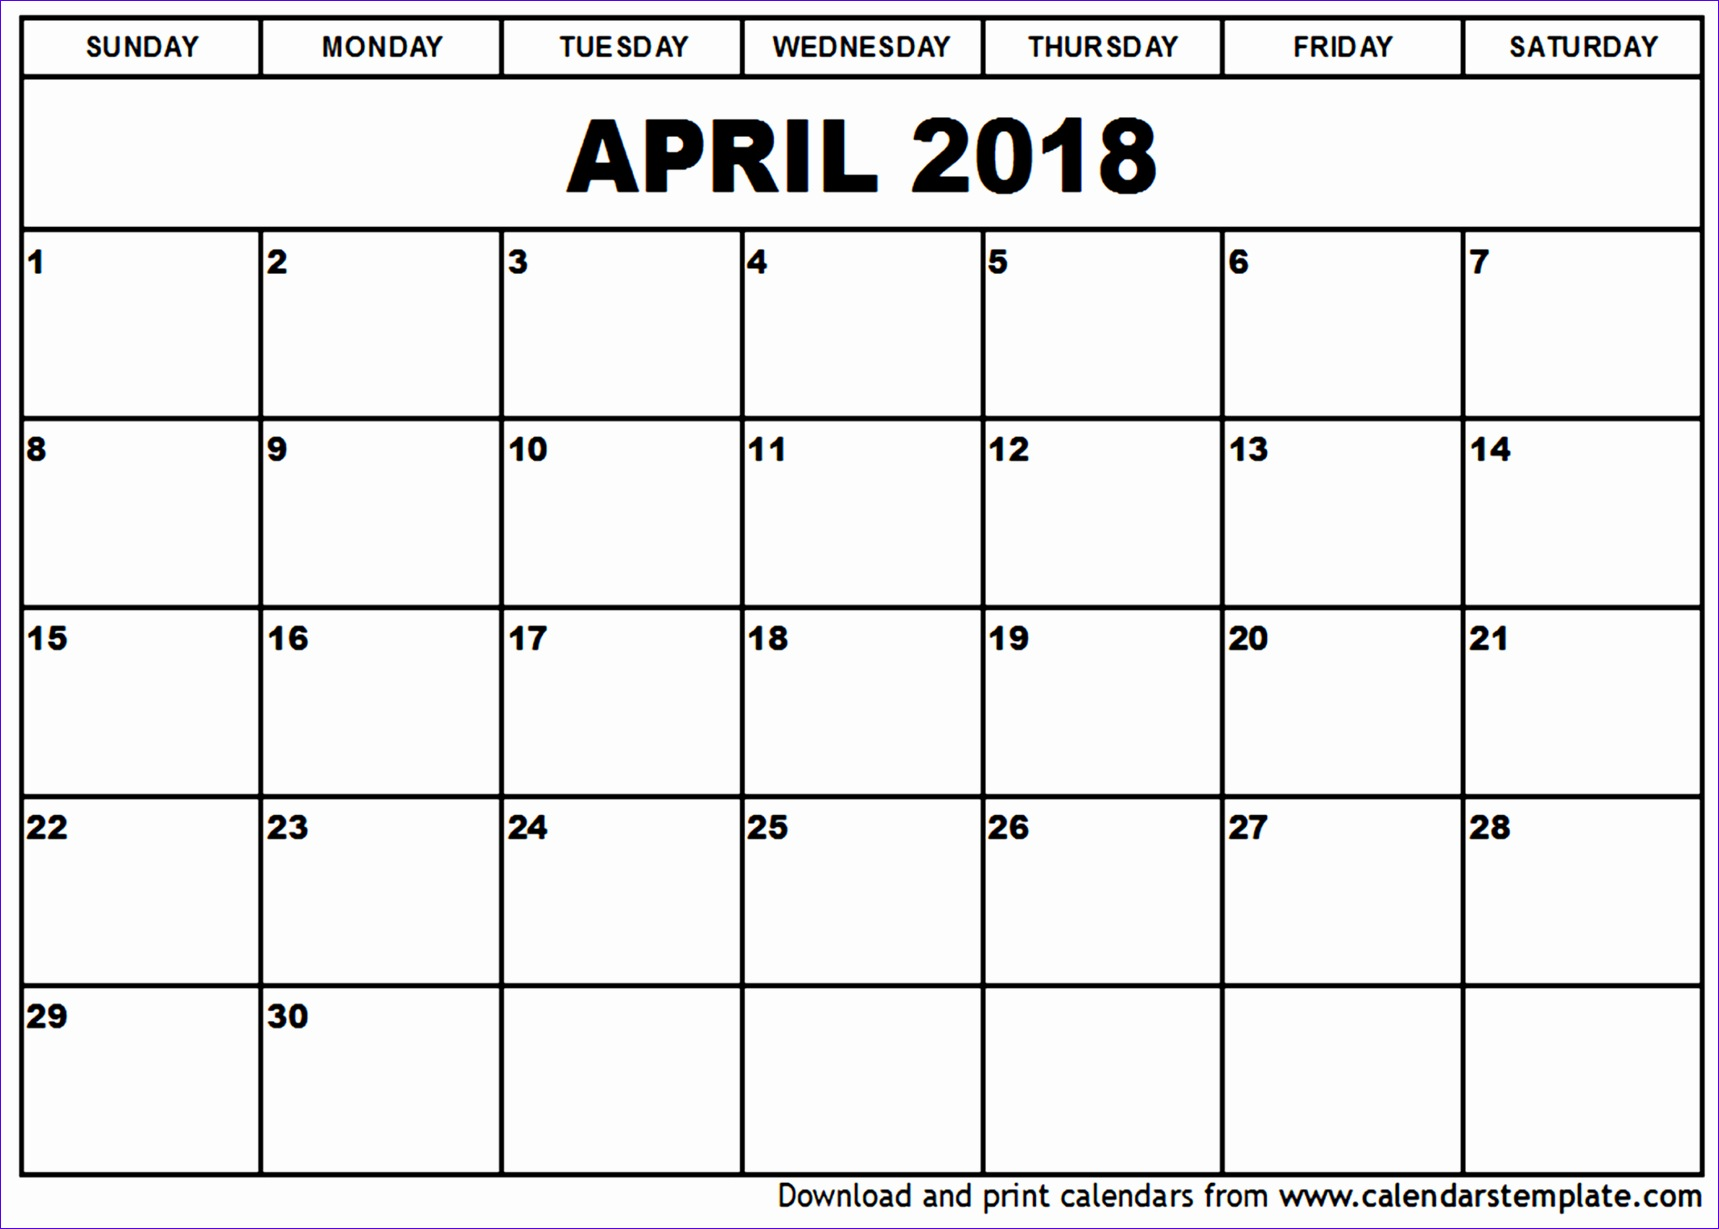 april 2018 calendar template april 2018 calendar MaIqdZ